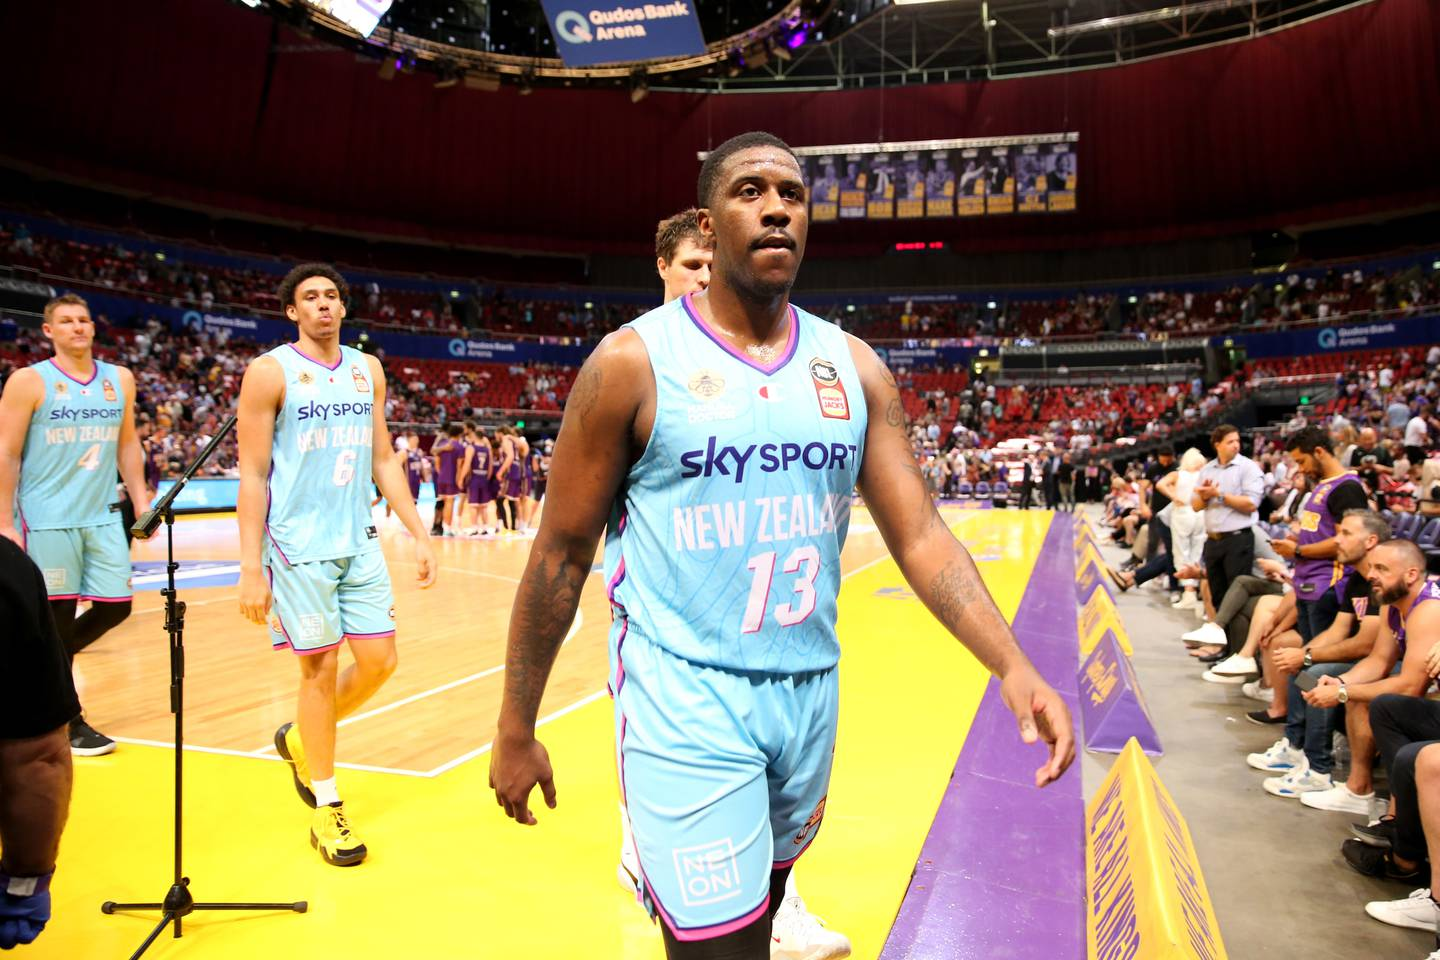 Lamar Patterson. Sydney Kings v New Zealand Breakers. NBL Round 5 played at Qudos Bank Arena, Sydney on Friday 12 February 2021. Photo Clay Cross / photosport.nz